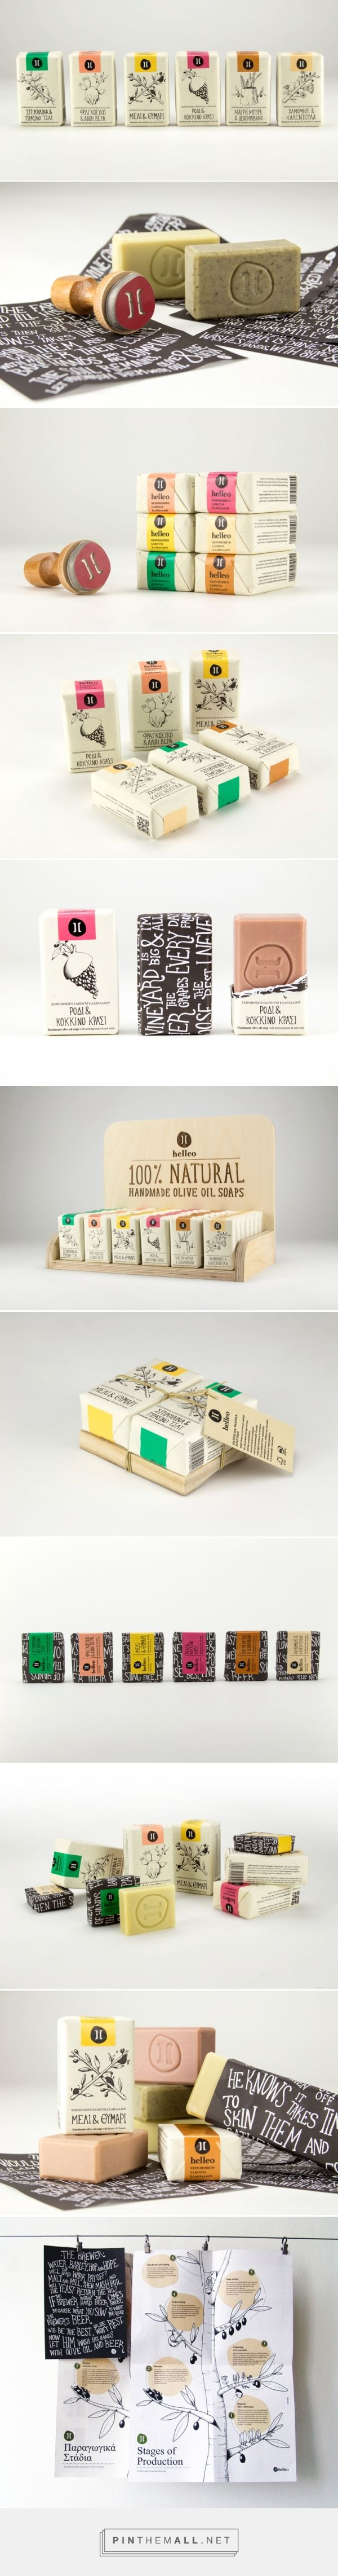 Packaging Design for \'Helleo\' Natural Soaps